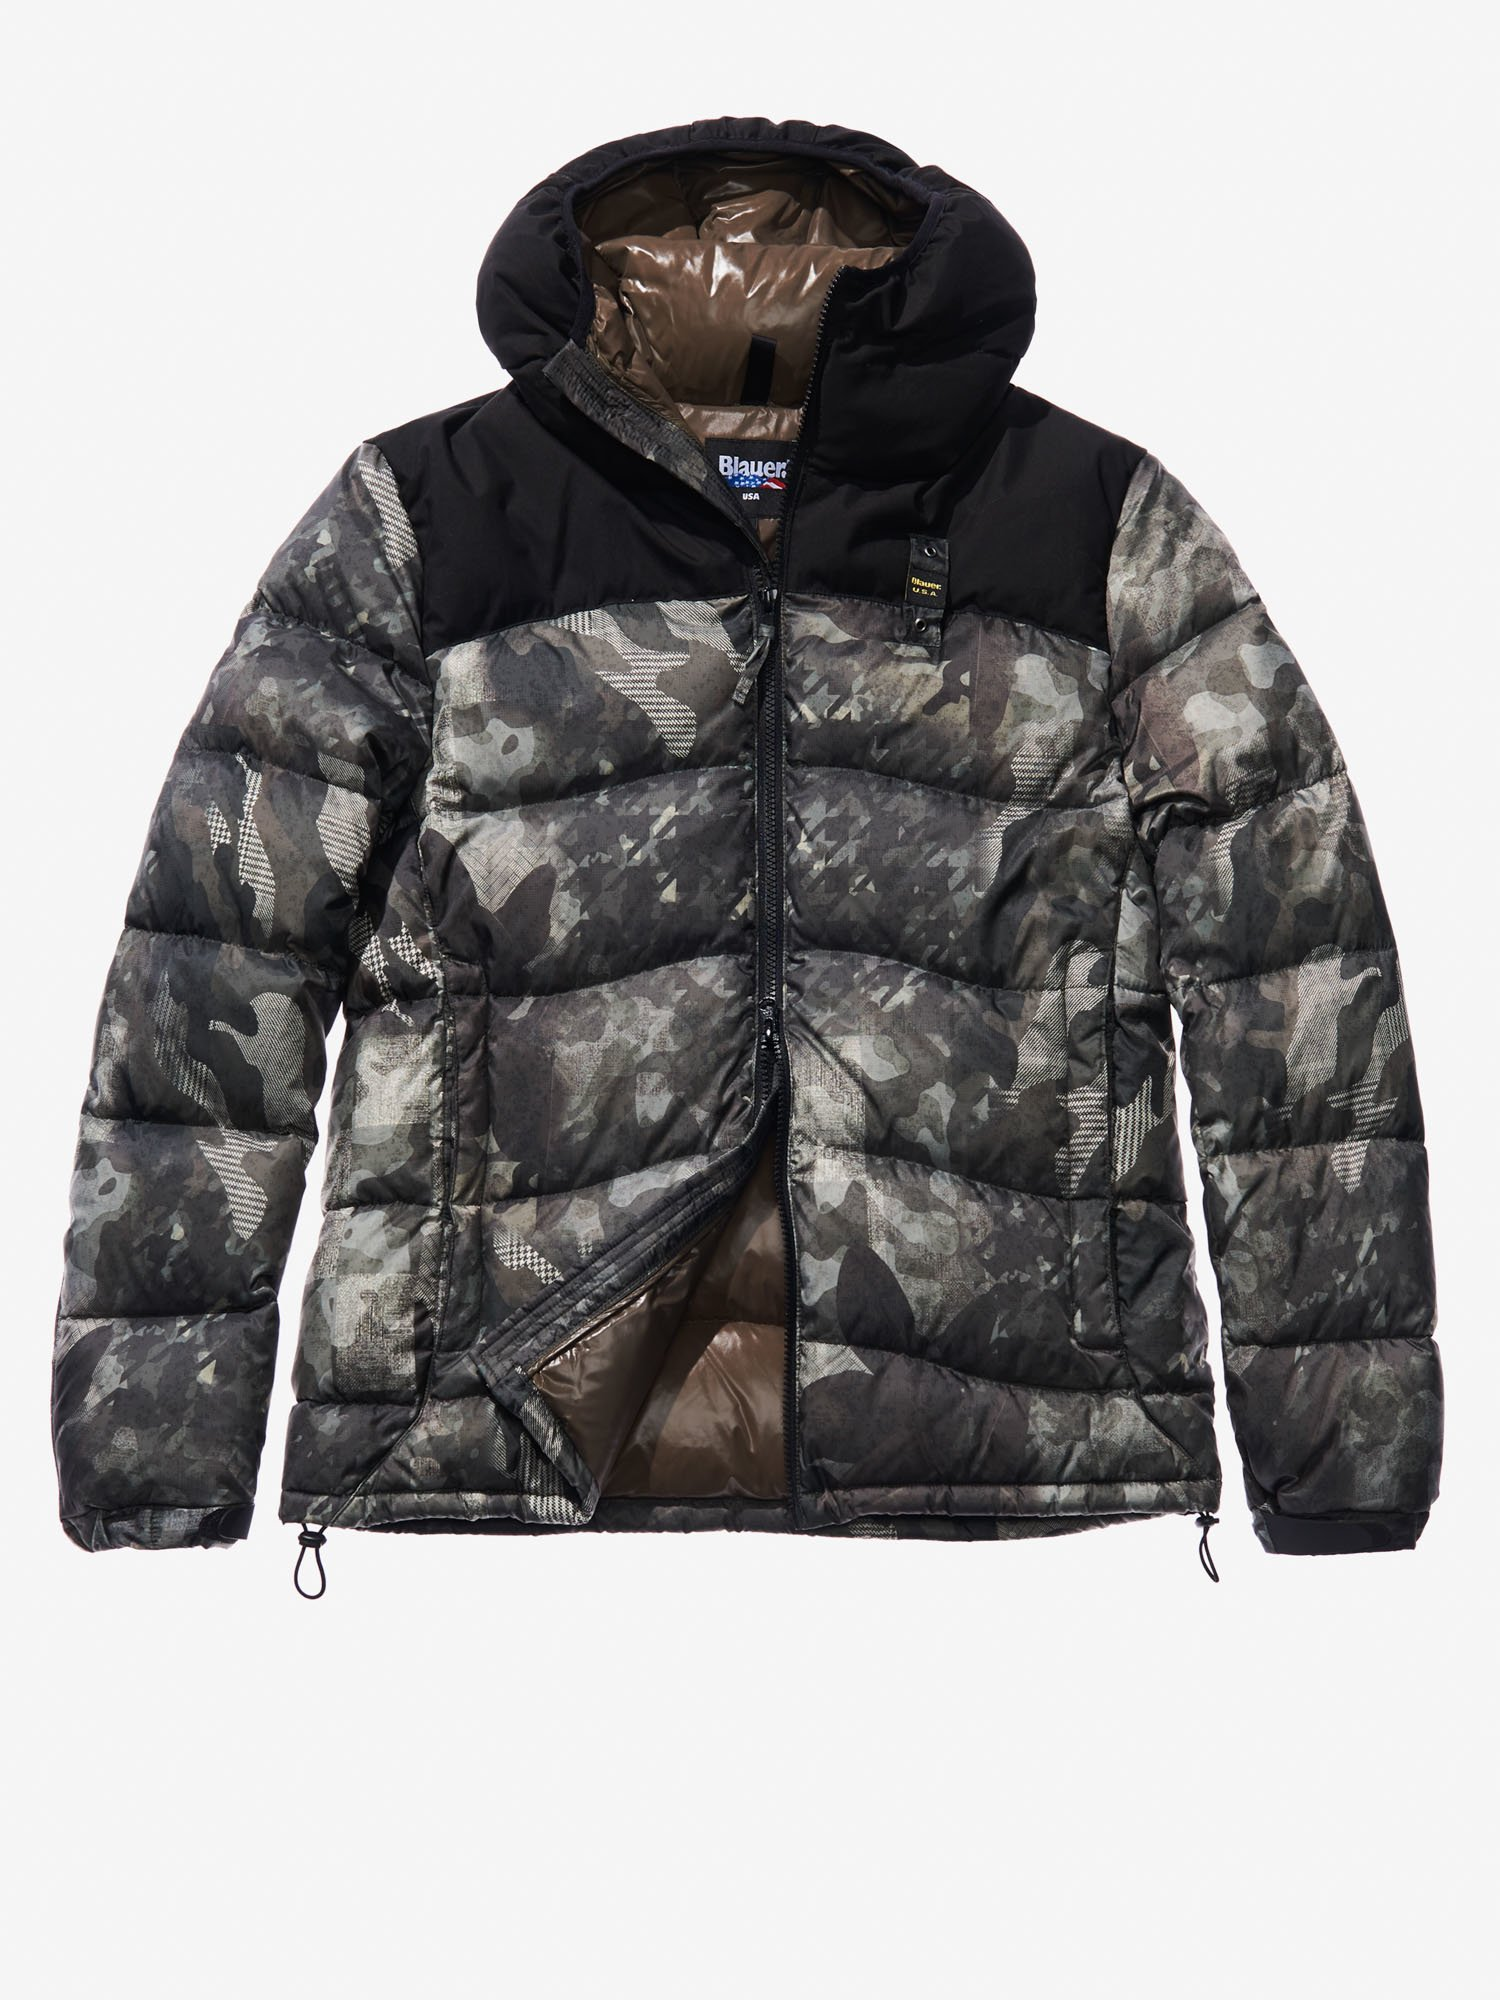 Blauer - NICOLO' COTTON AND NYLON CAMOUFLAGE DOWN JACKET - blue - Blauer